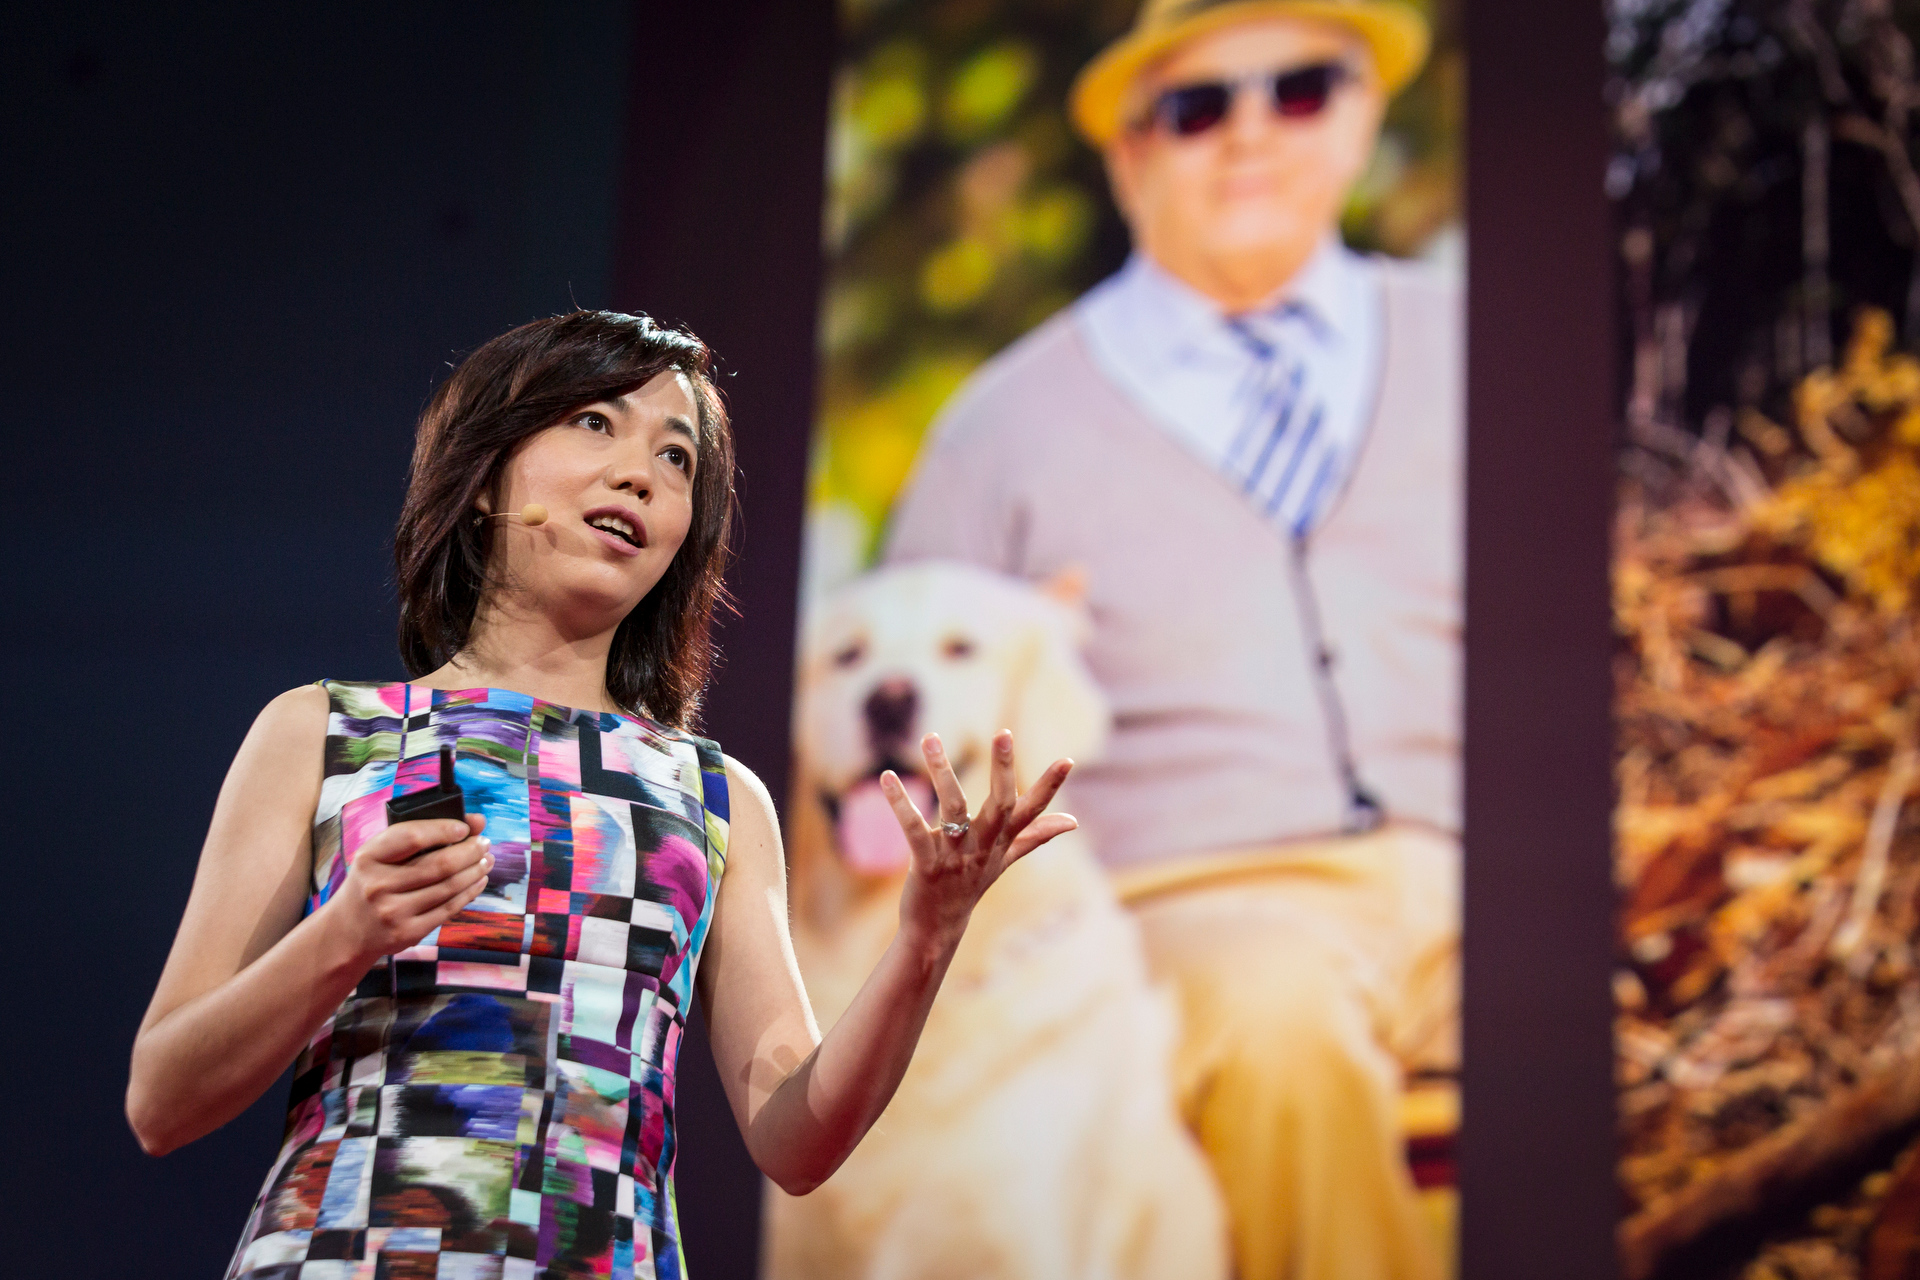 Fei-Fei Li talks about the quest to teach computers to understand what they see. Read why it's so hard. Photo: Bret Hartman/TED